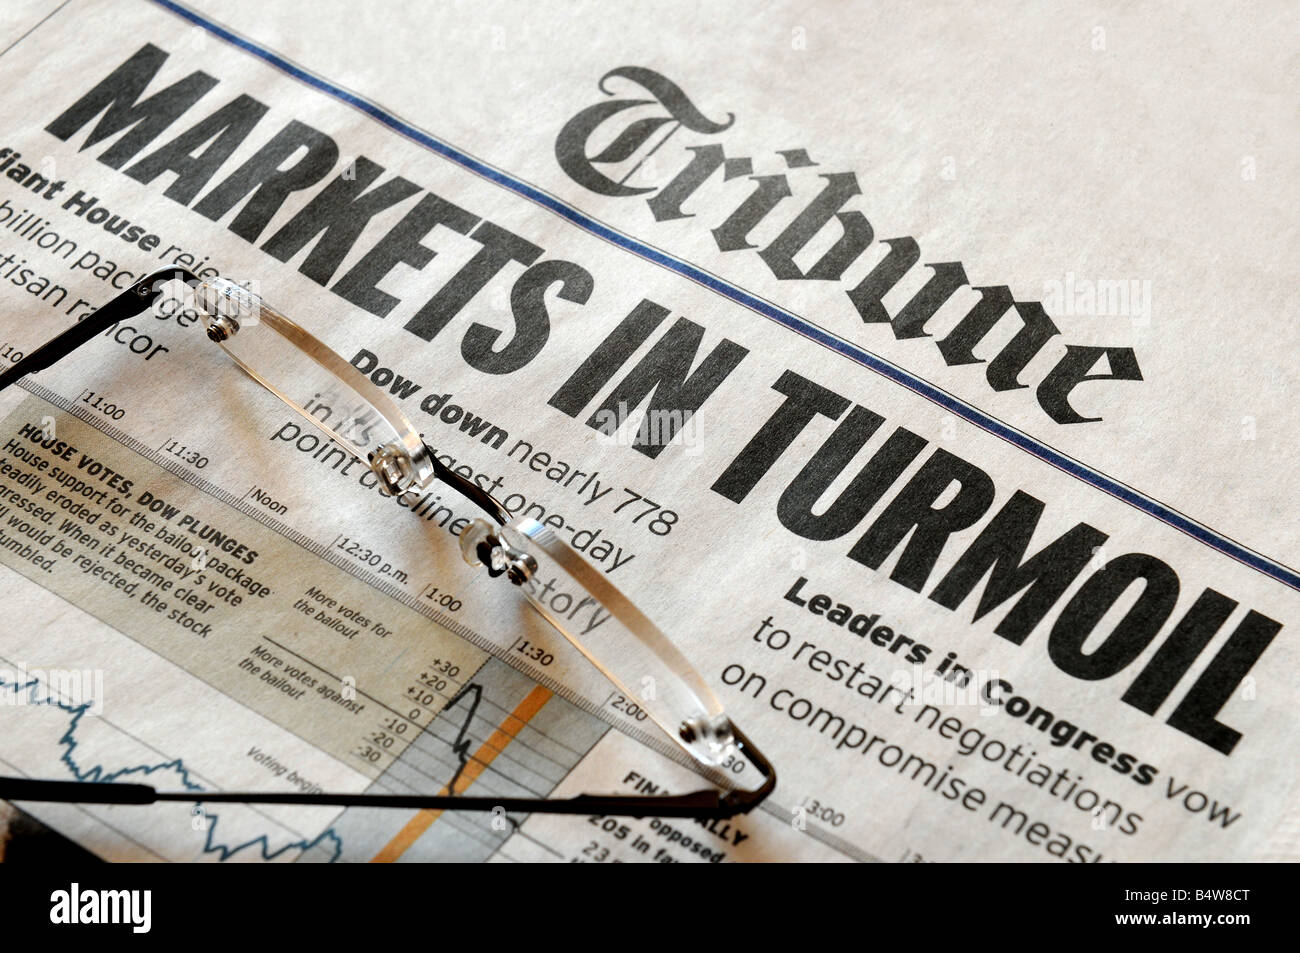 Markets In Turmoil - stock market headlines from an (unknown) Tribune newapsper - Stock Image